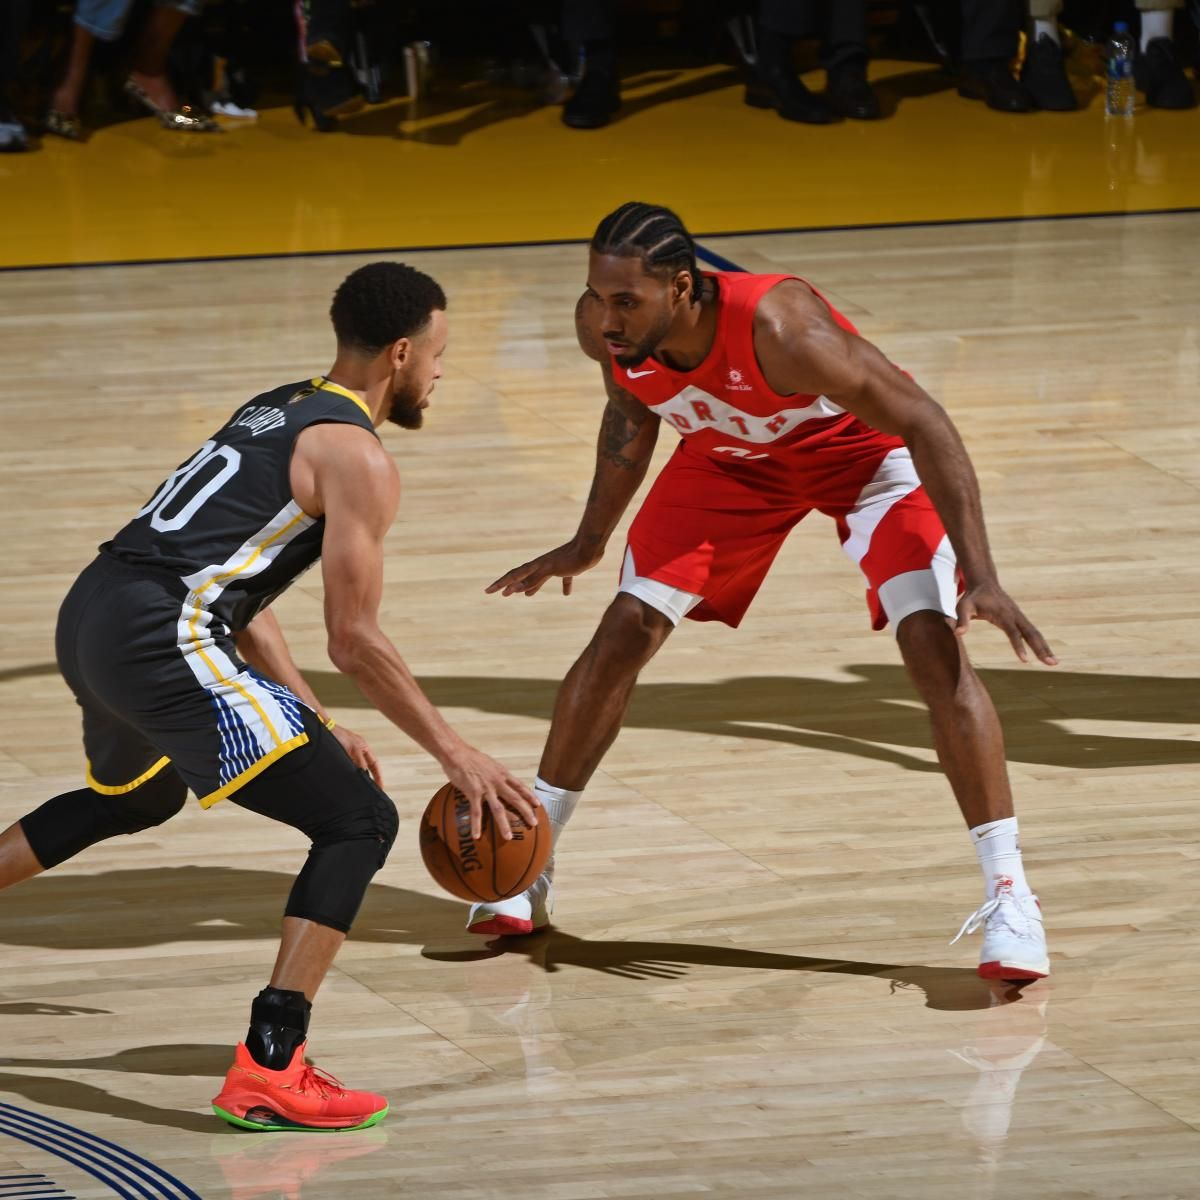 Kawhi Leonard Raptors Top Warriors For 1st Nba Title After Klay Thompson Injury Klay Thompson Injury Basketball Clothes Basketball Game Outfit